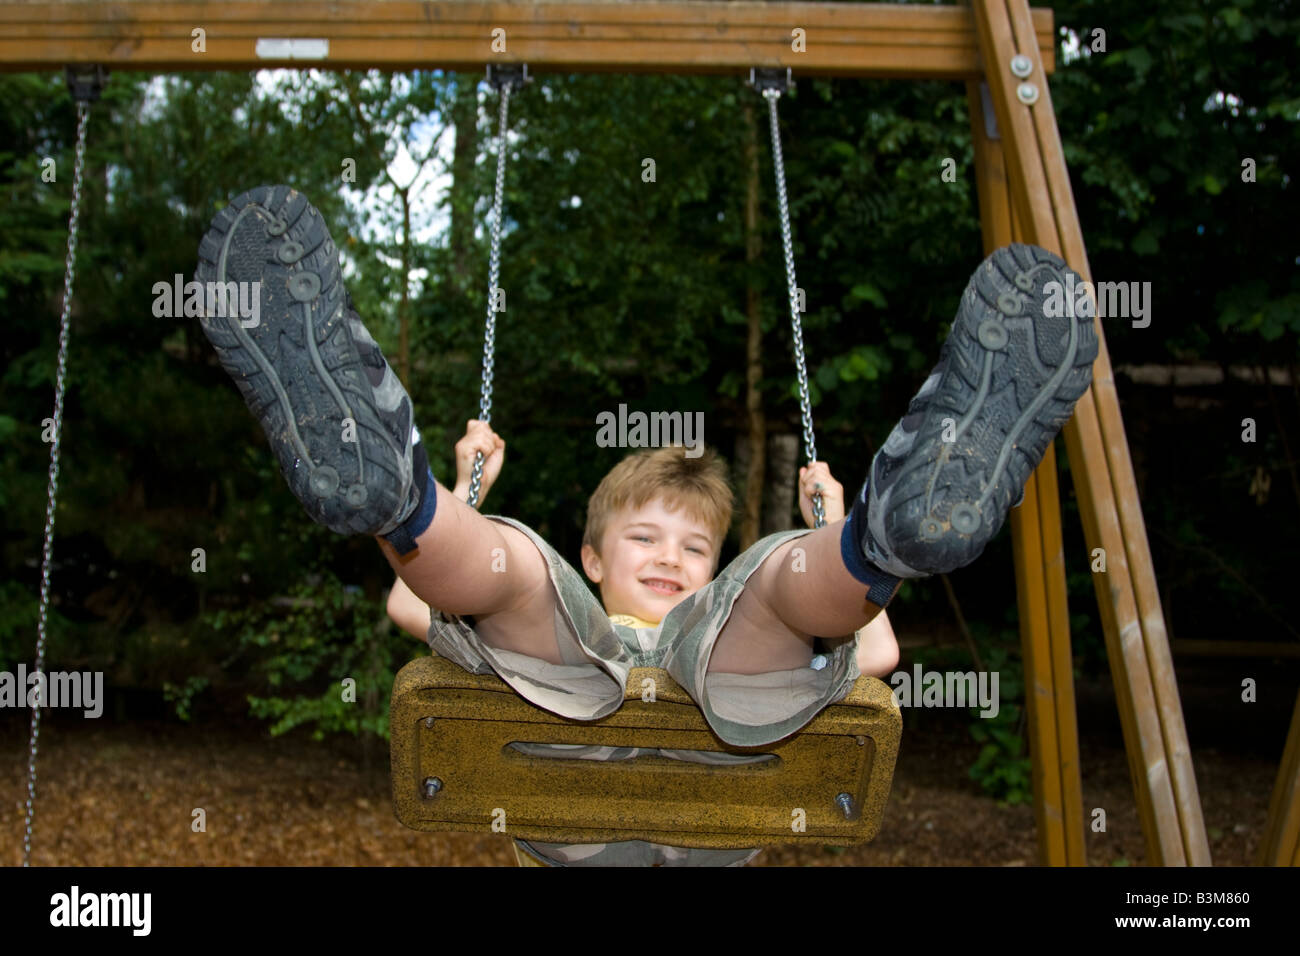 6 year old boy on swing - Stock Image